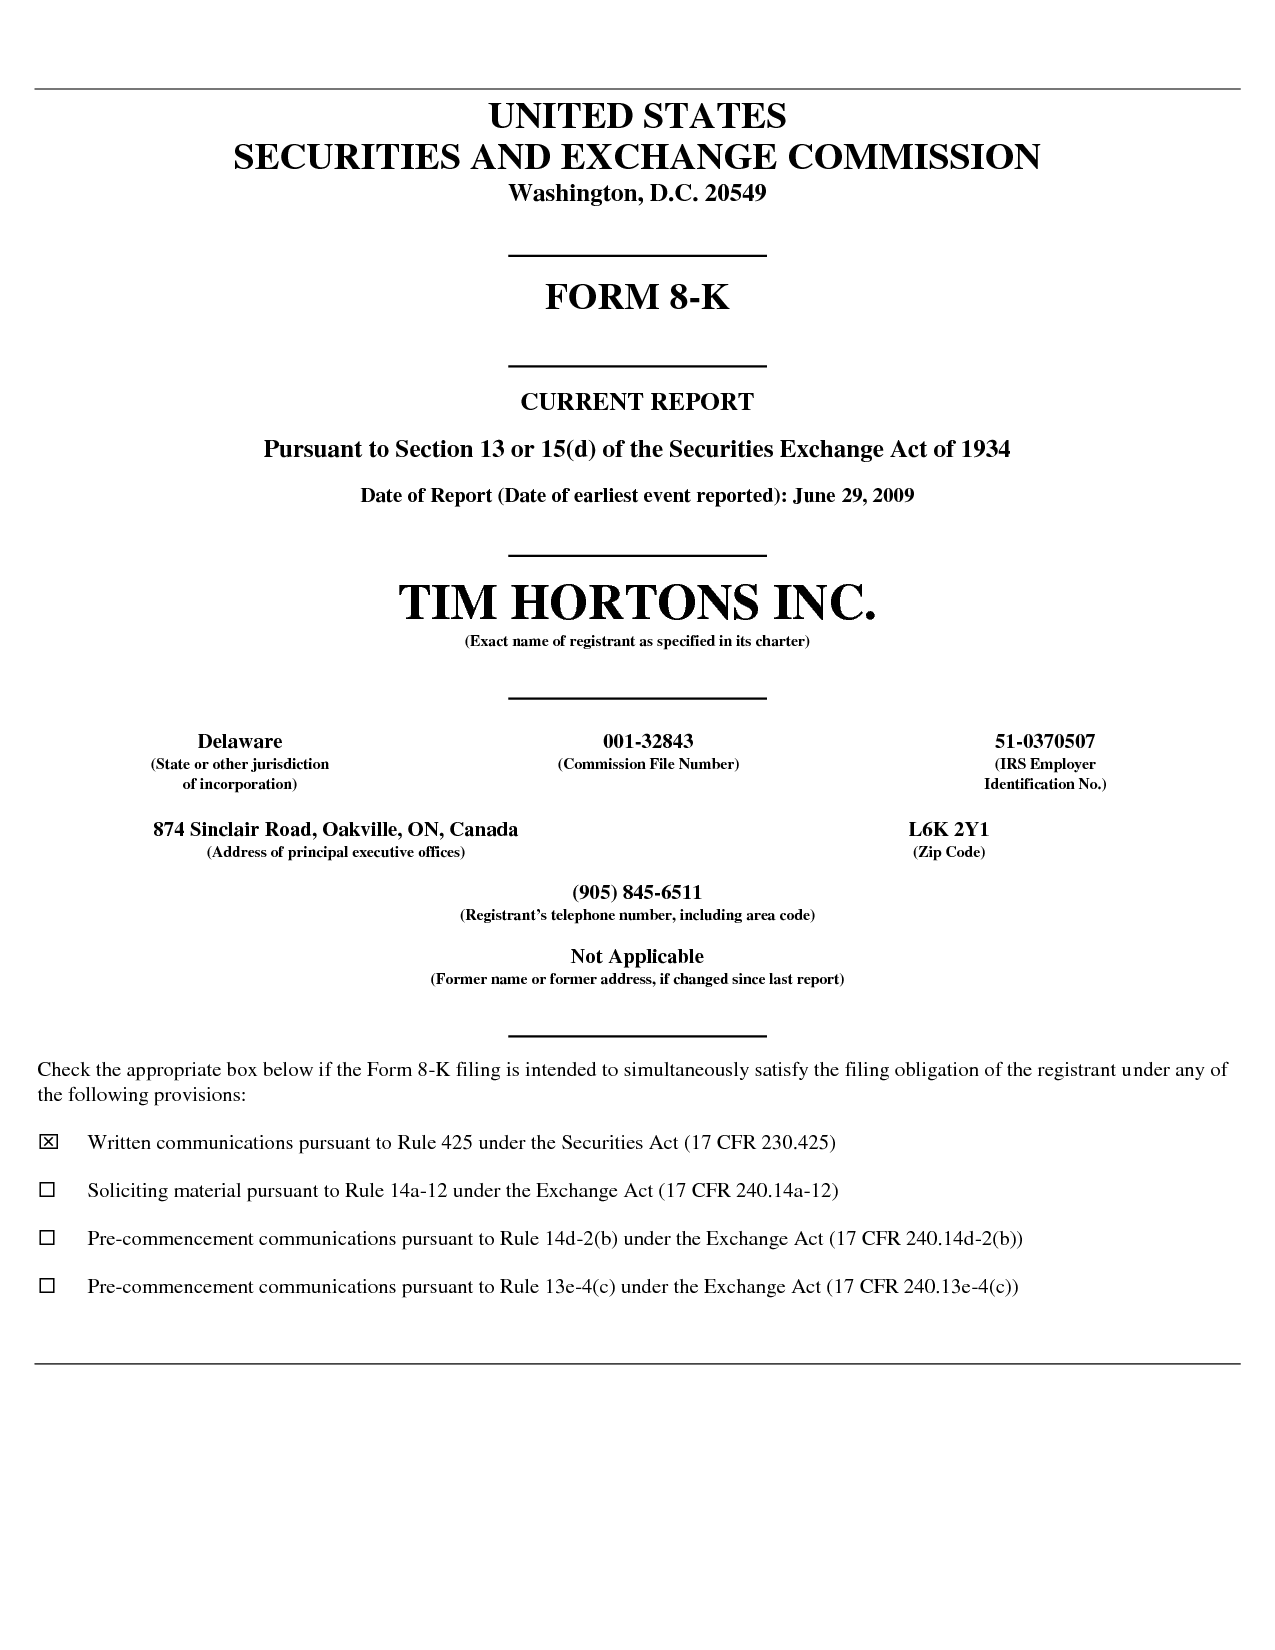 tim hortons inc united states tim hortons application print out